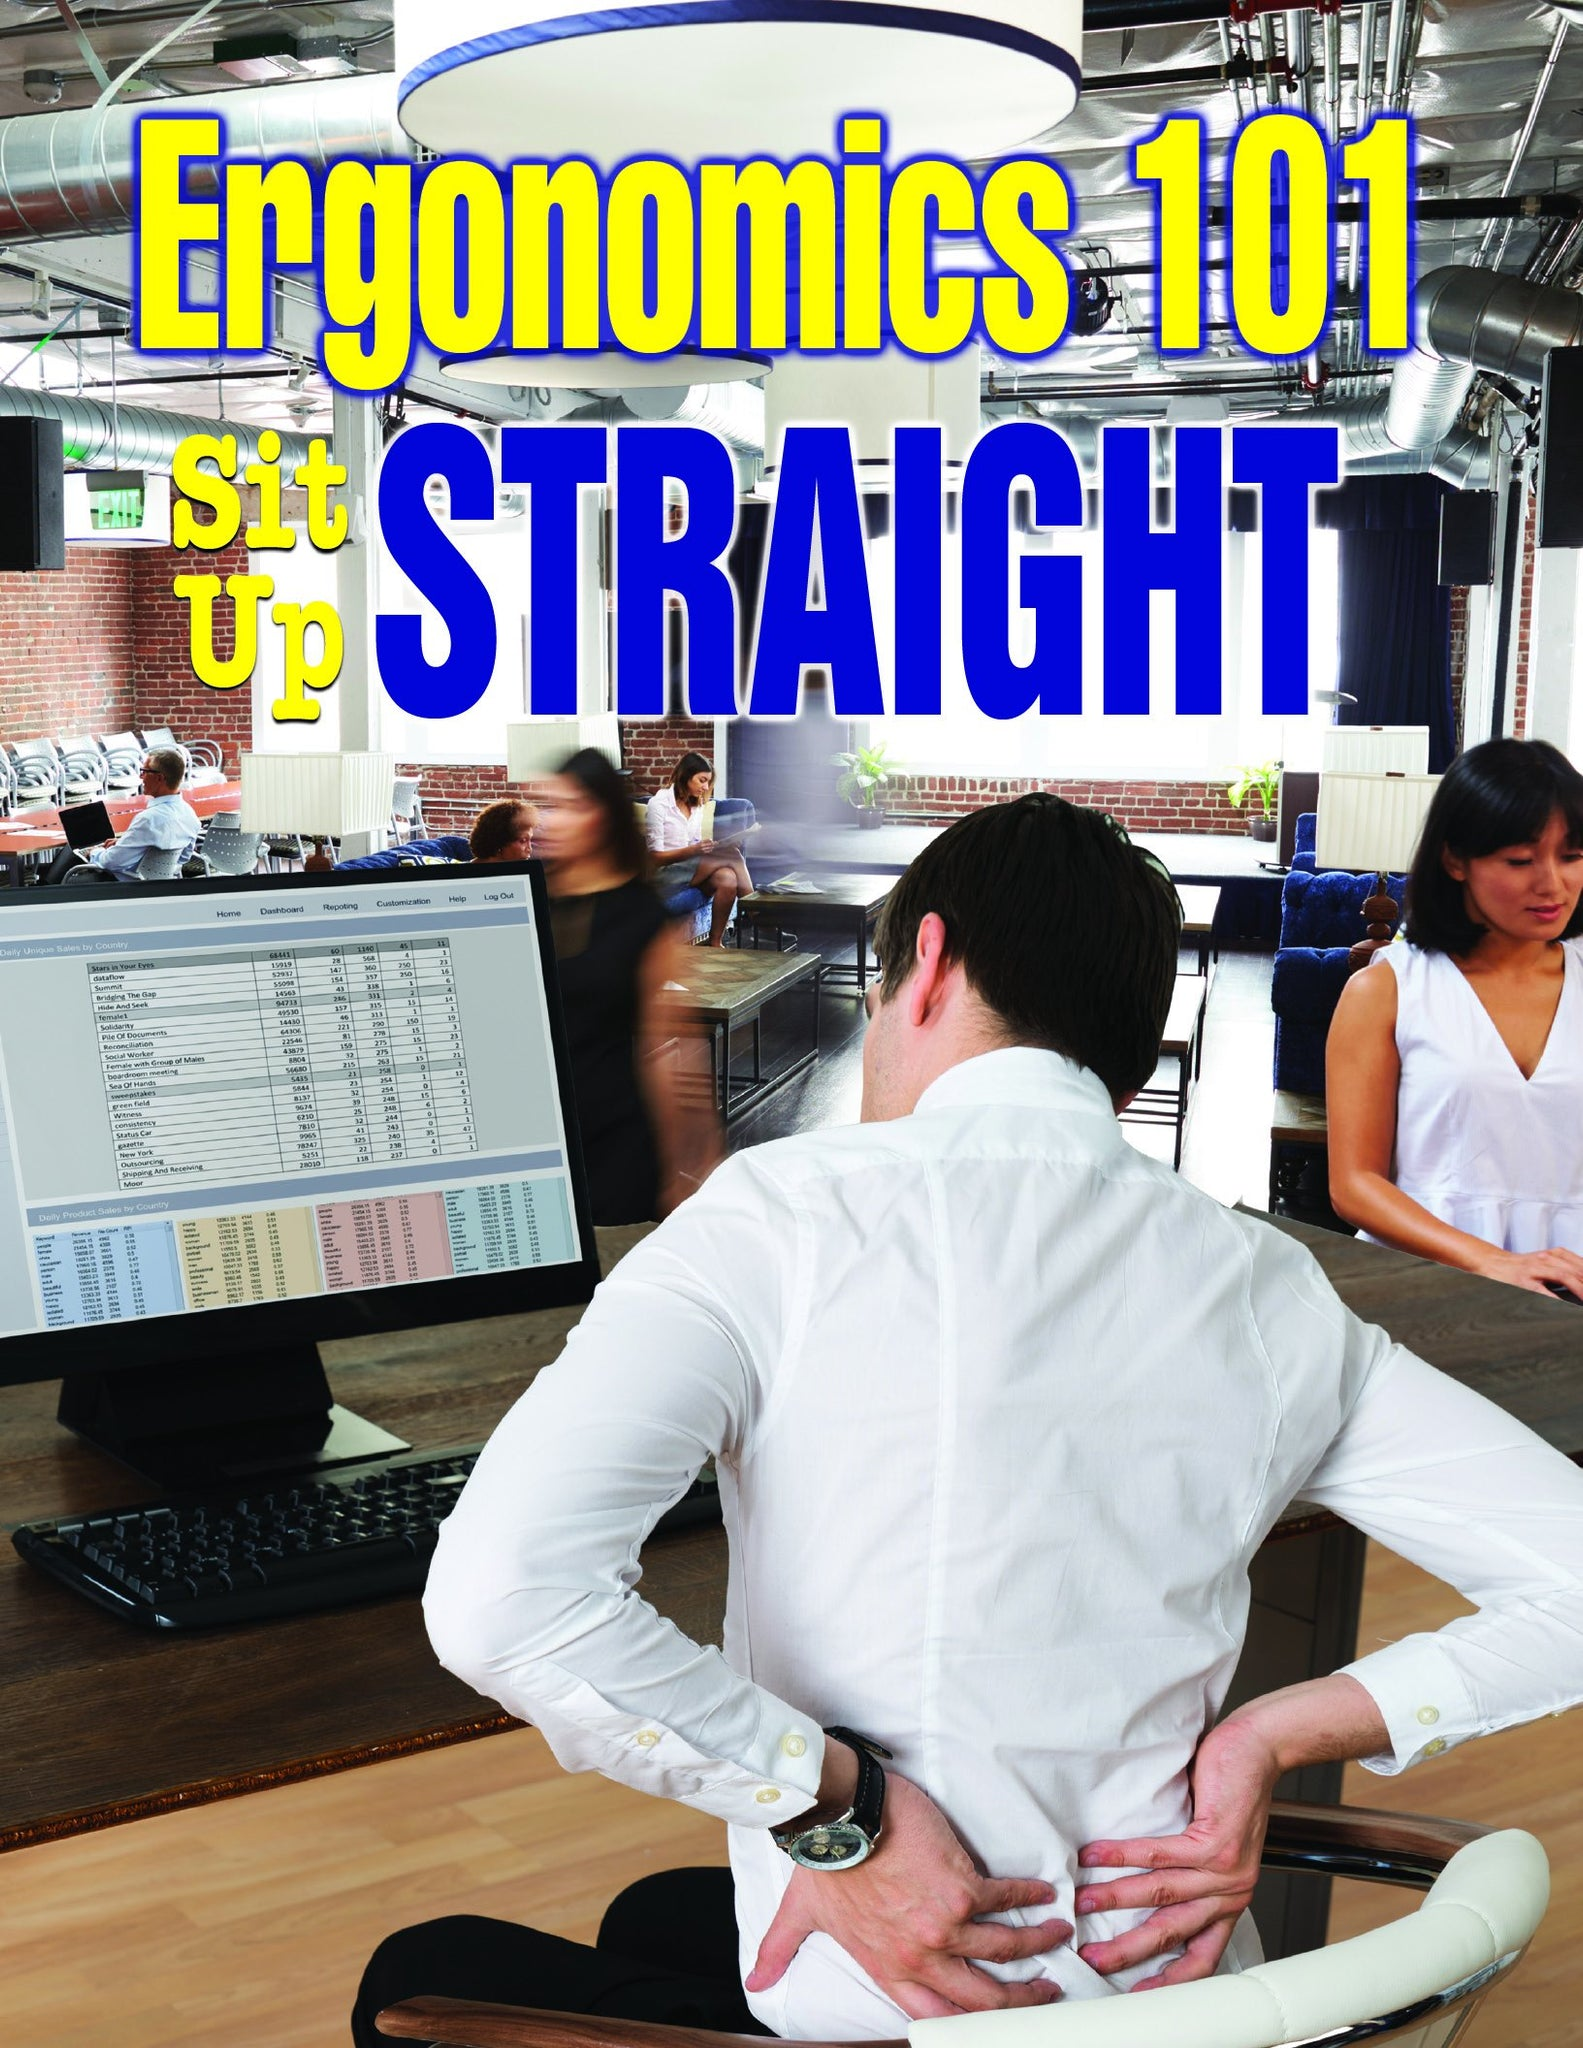 Ergonomics 101 Sit Up Straight - Safety Poster New Posters General